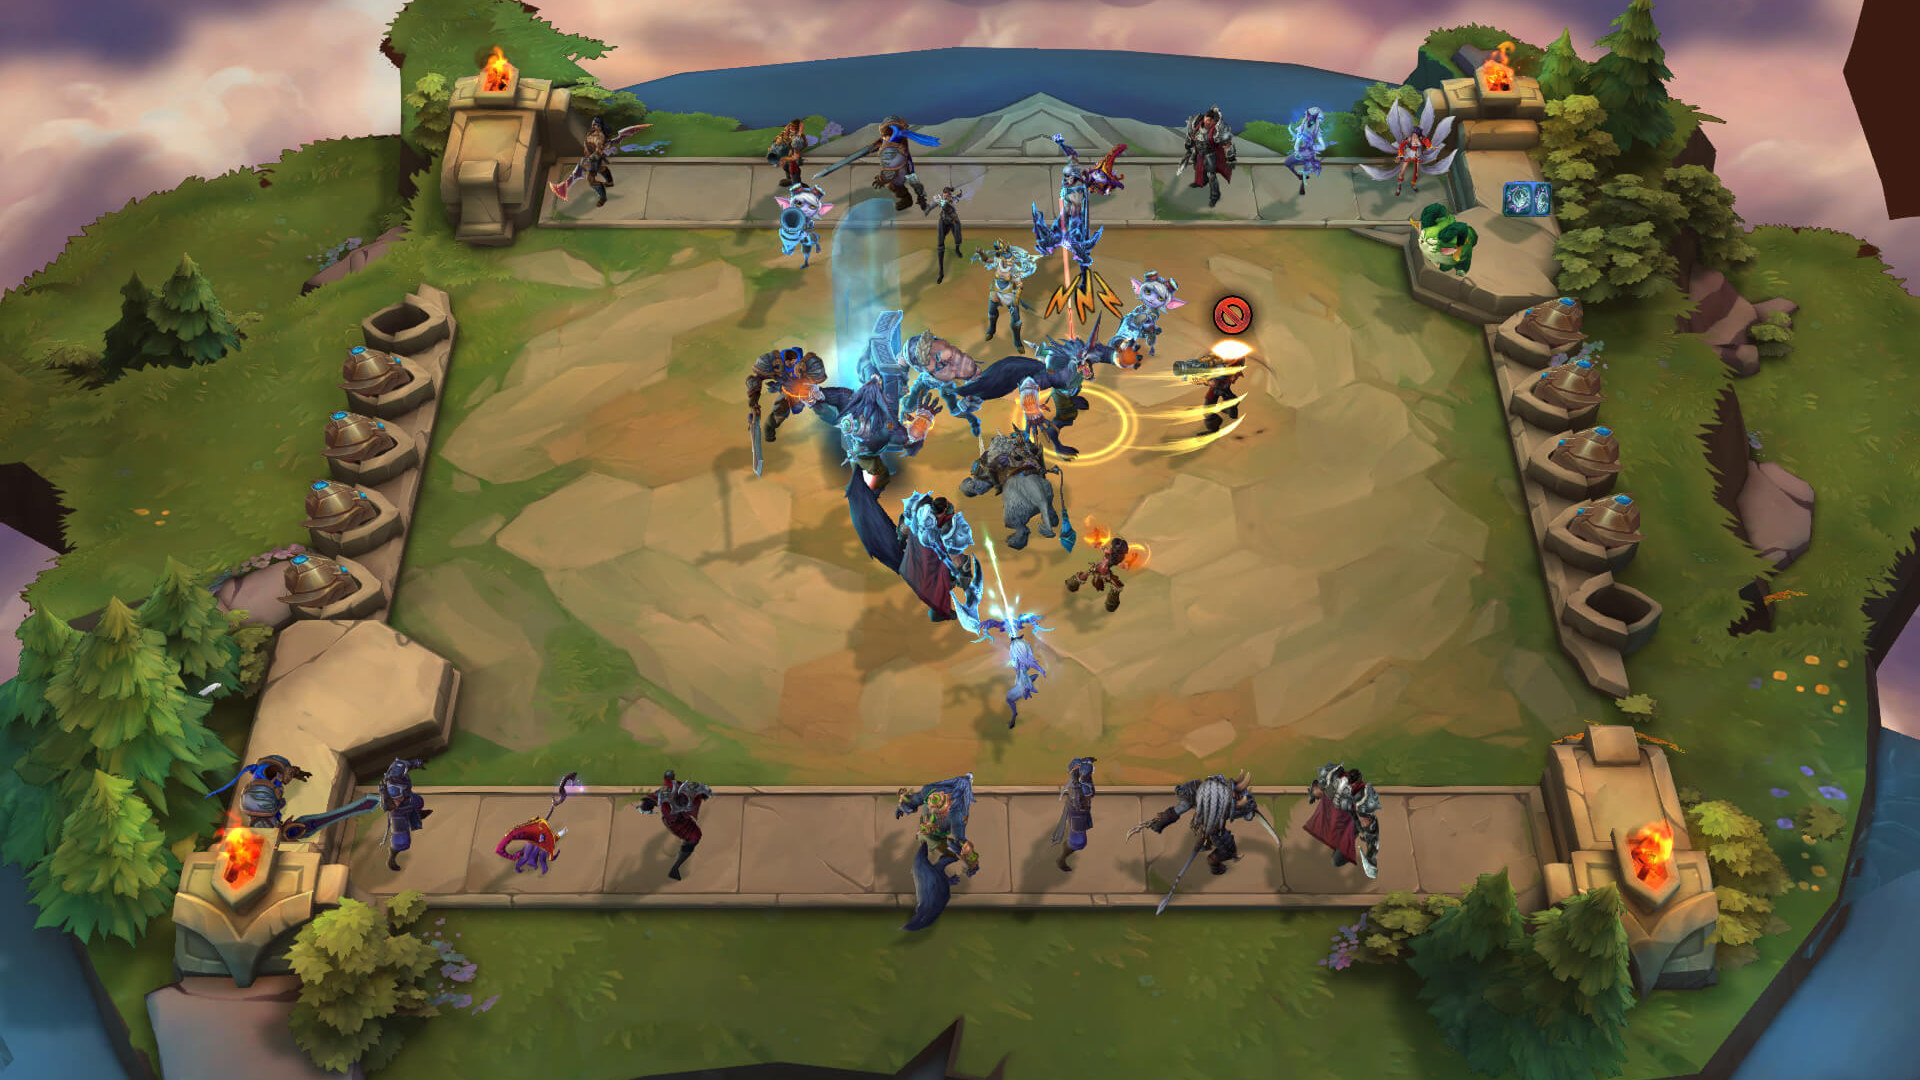 League Of Legends joins Auto Chess craze with Teamfight Tactics